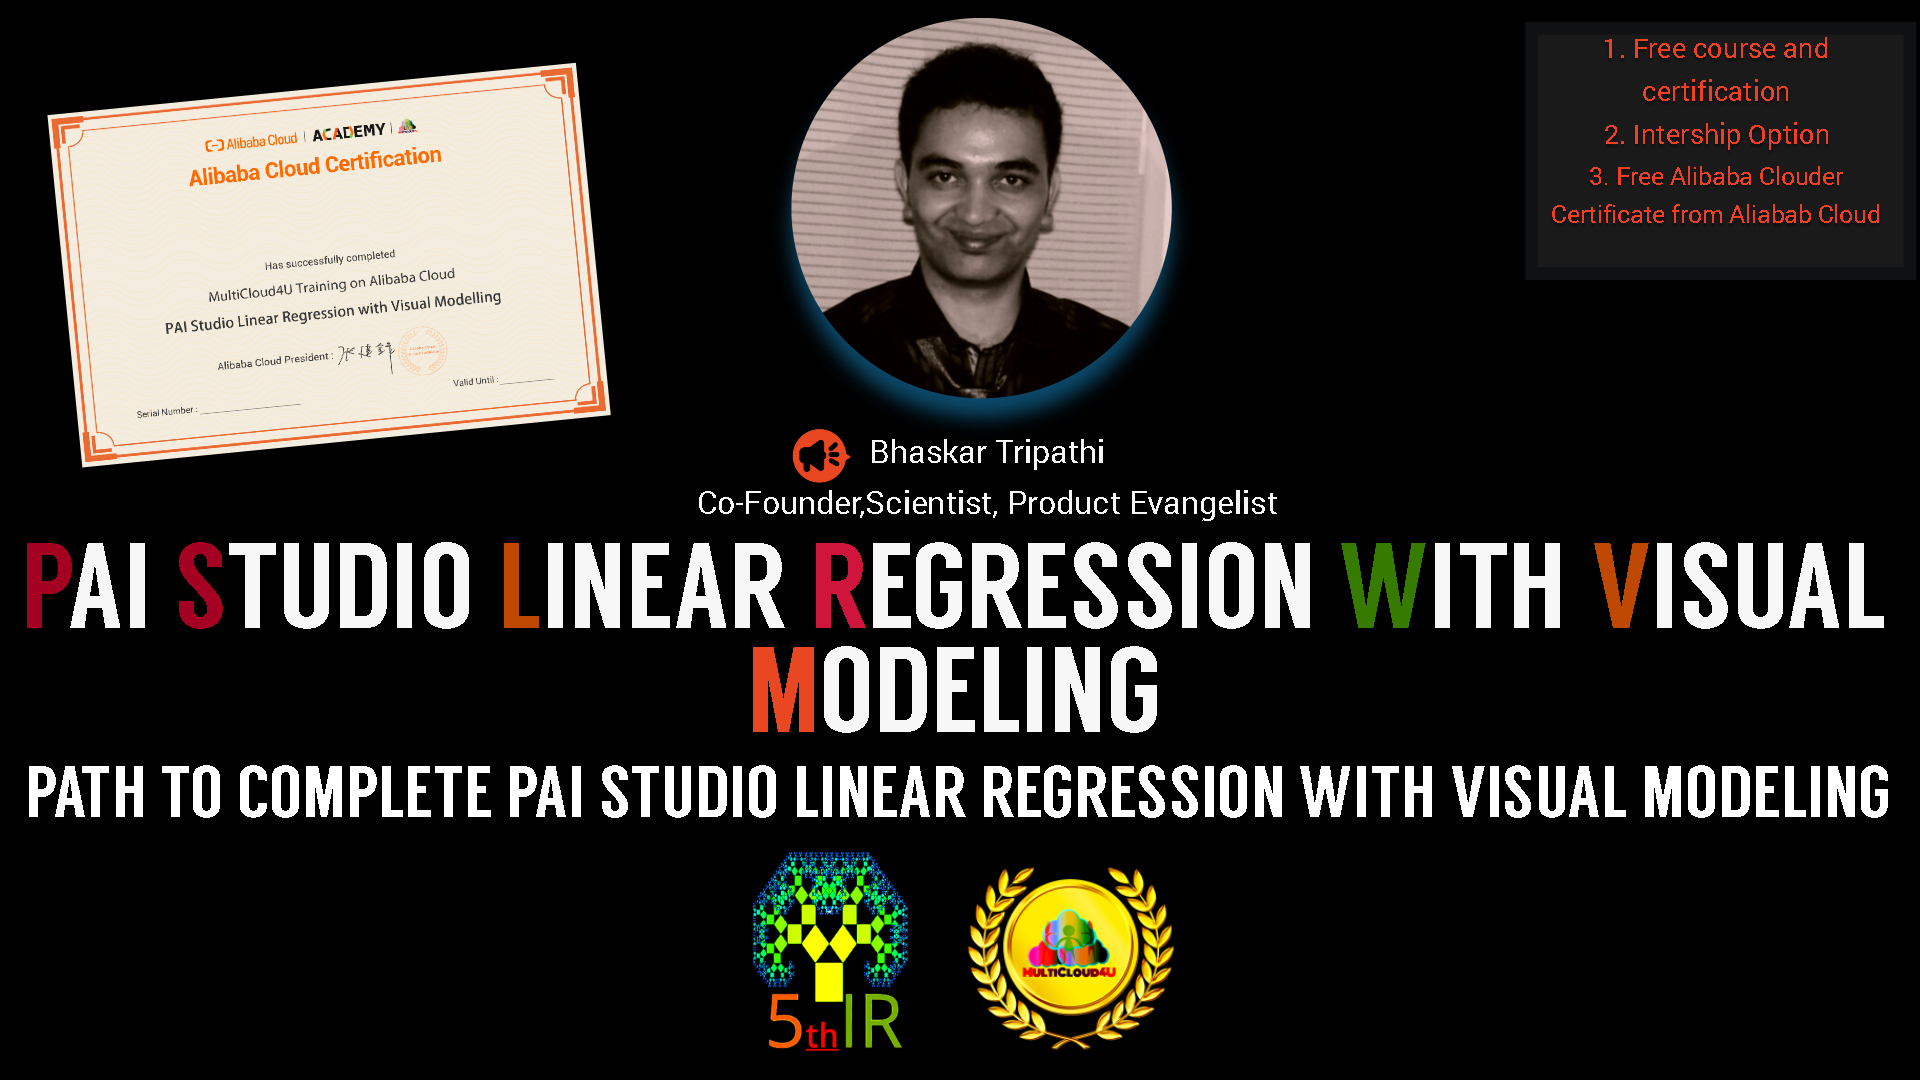 PAI Studio Linear Regression With Visual Modeling